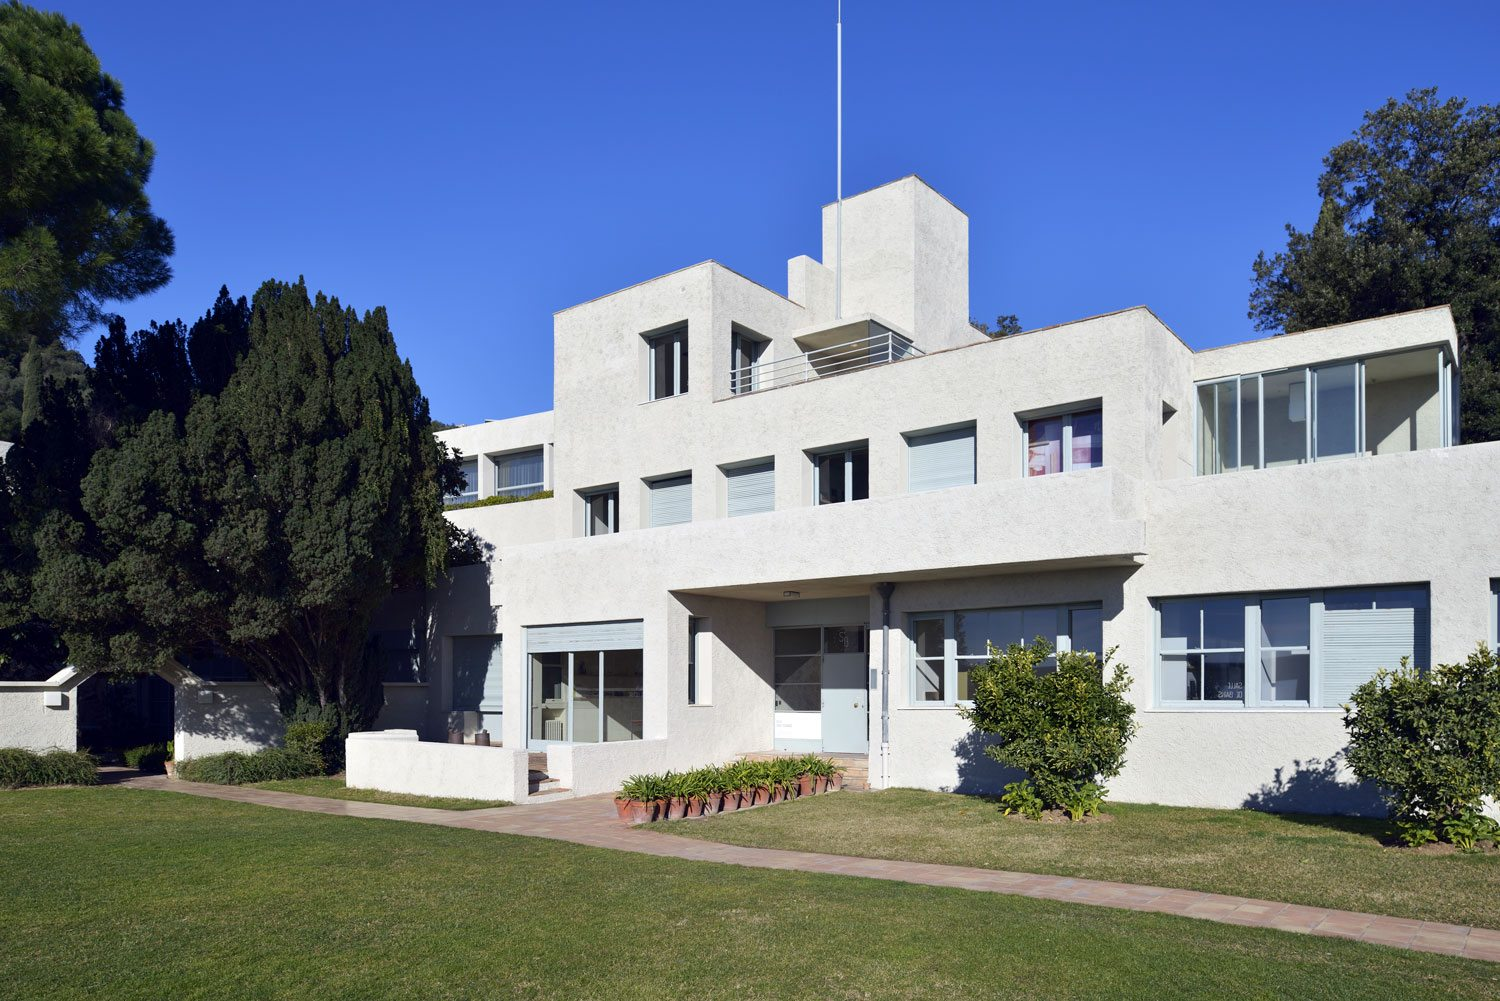 Villa Noailles was built by Robert Mallet-Stevens in the 1920s for art patrons, Marie-Laure and Charles de Noailles.